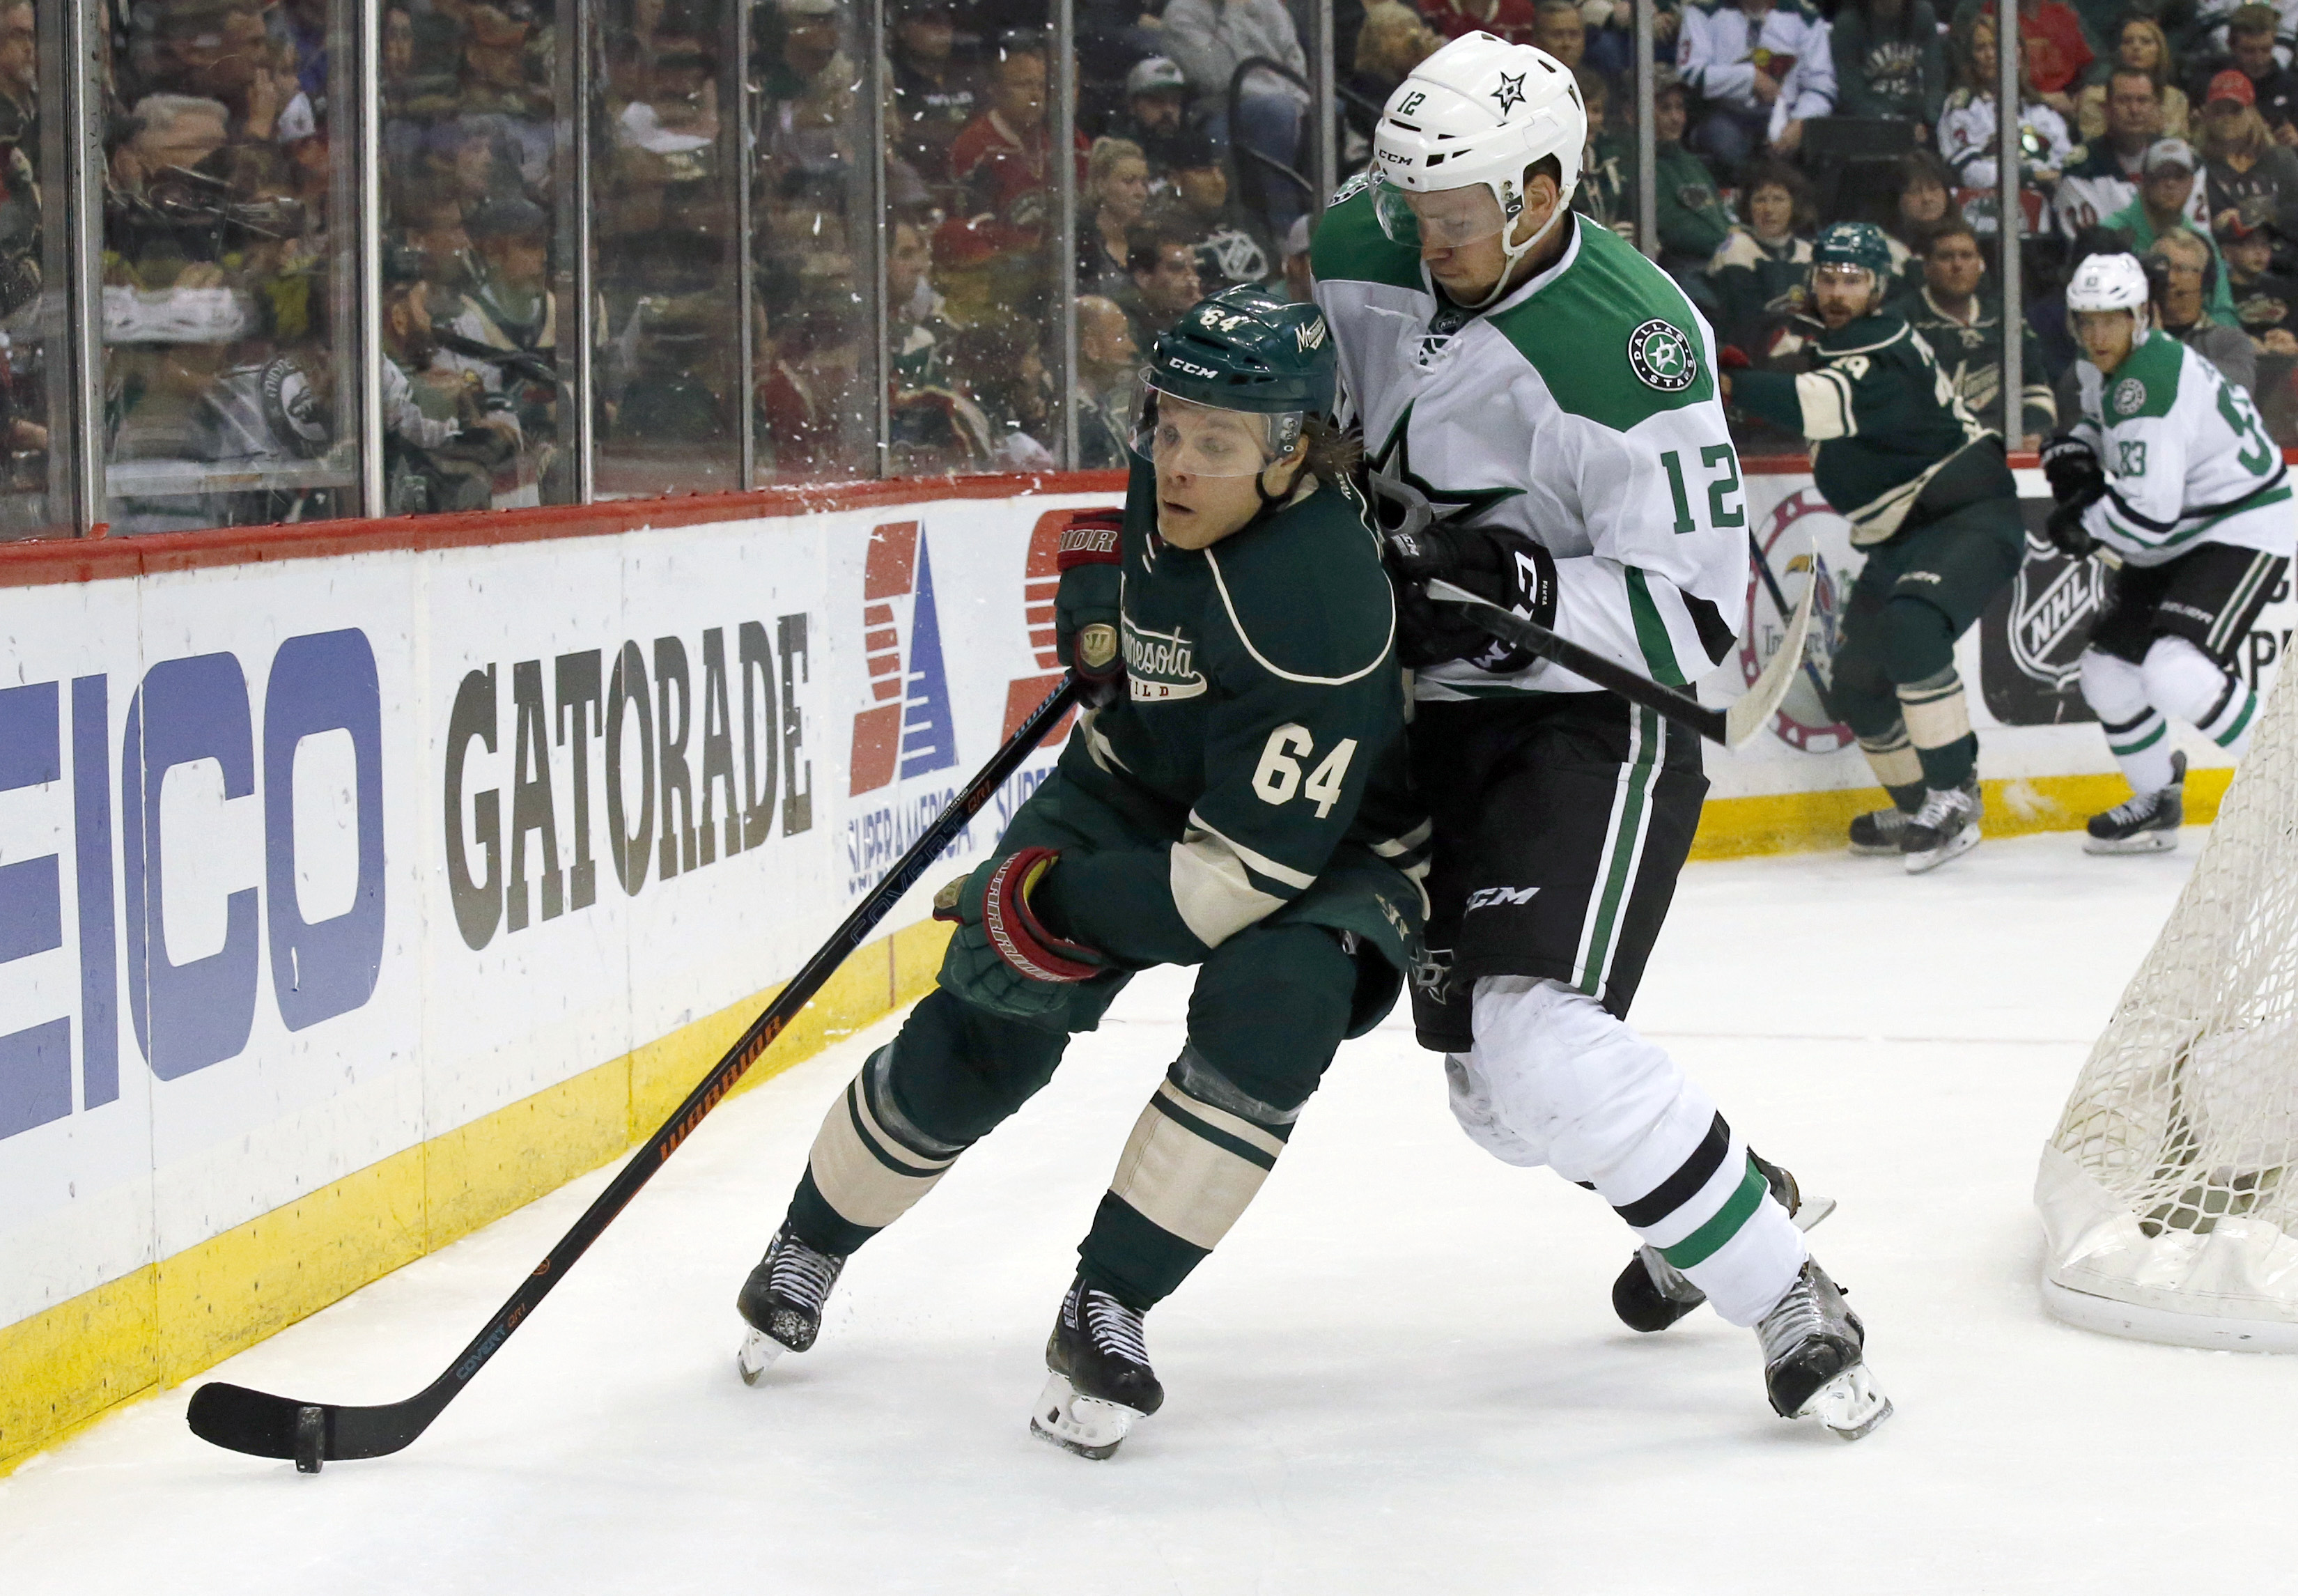 Minnesota Wild center Mikael Granlund (64) and Dallas Stars center Radek Faksa (12) battle for the puck during the first period of Game 6 in the first round of the NHL Stanley Cup hockey playoffs in St. Paul, Minn., Sunday, April 24, 2016. (AP Photo/Ann H